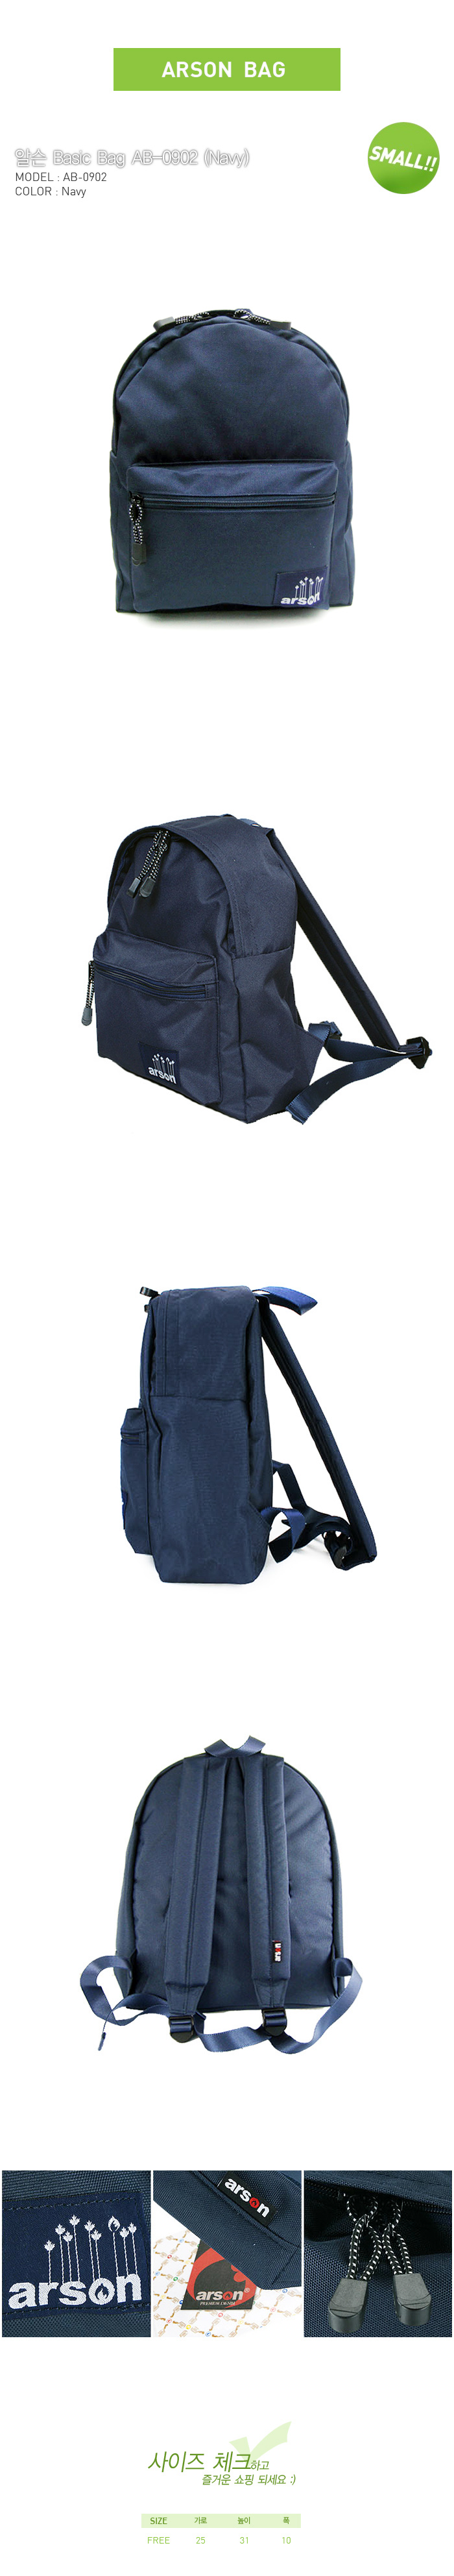 [ ARSON ] AB-0902 (Navy)/Backpack School Bag